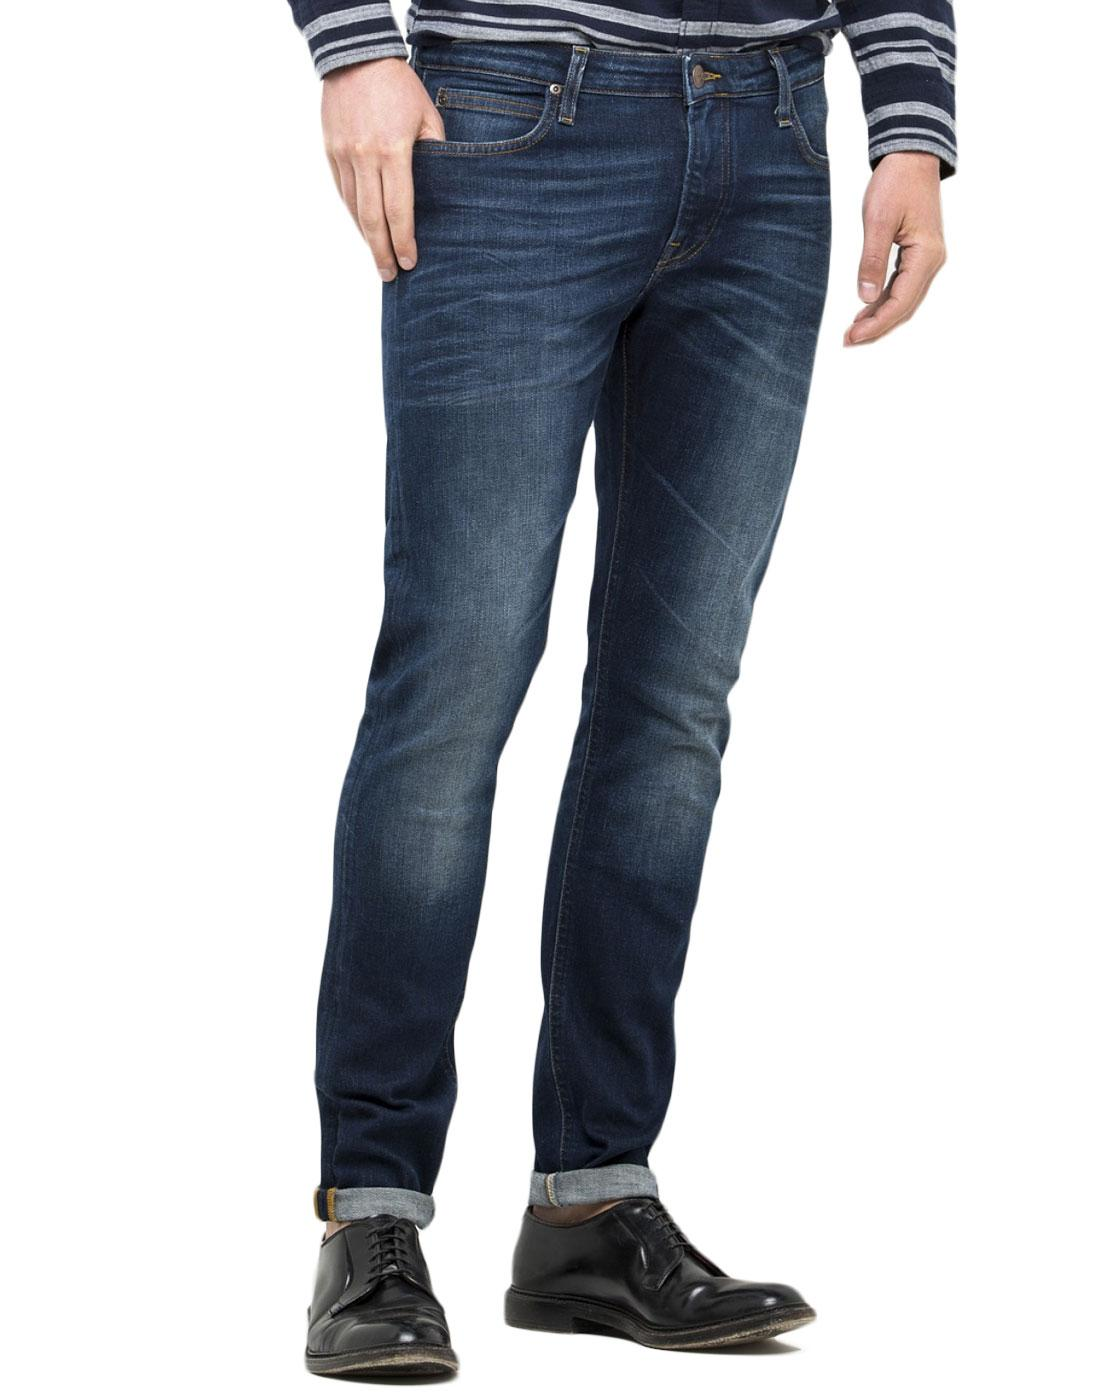 Malone LEE Mod Bright Blue Stretch Skinny Jeans